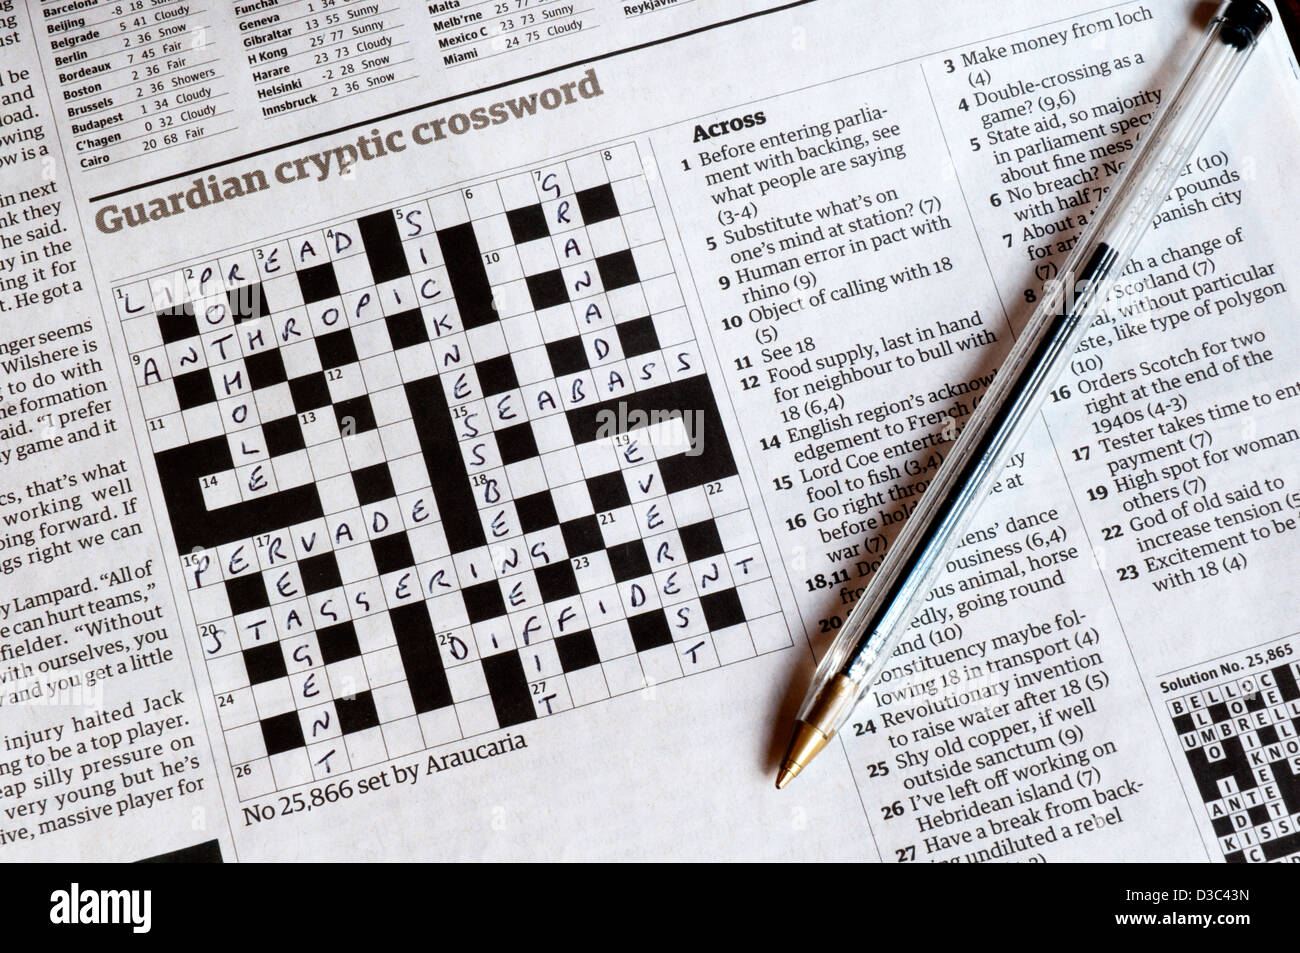 Part completed Guardian cryptic crossword set by Araucaria (John Graham). See D3C42E for blank version of puzzle. & Part completed Guardian cryptic crossword set by Araucaria (John ... 25forcollege.com